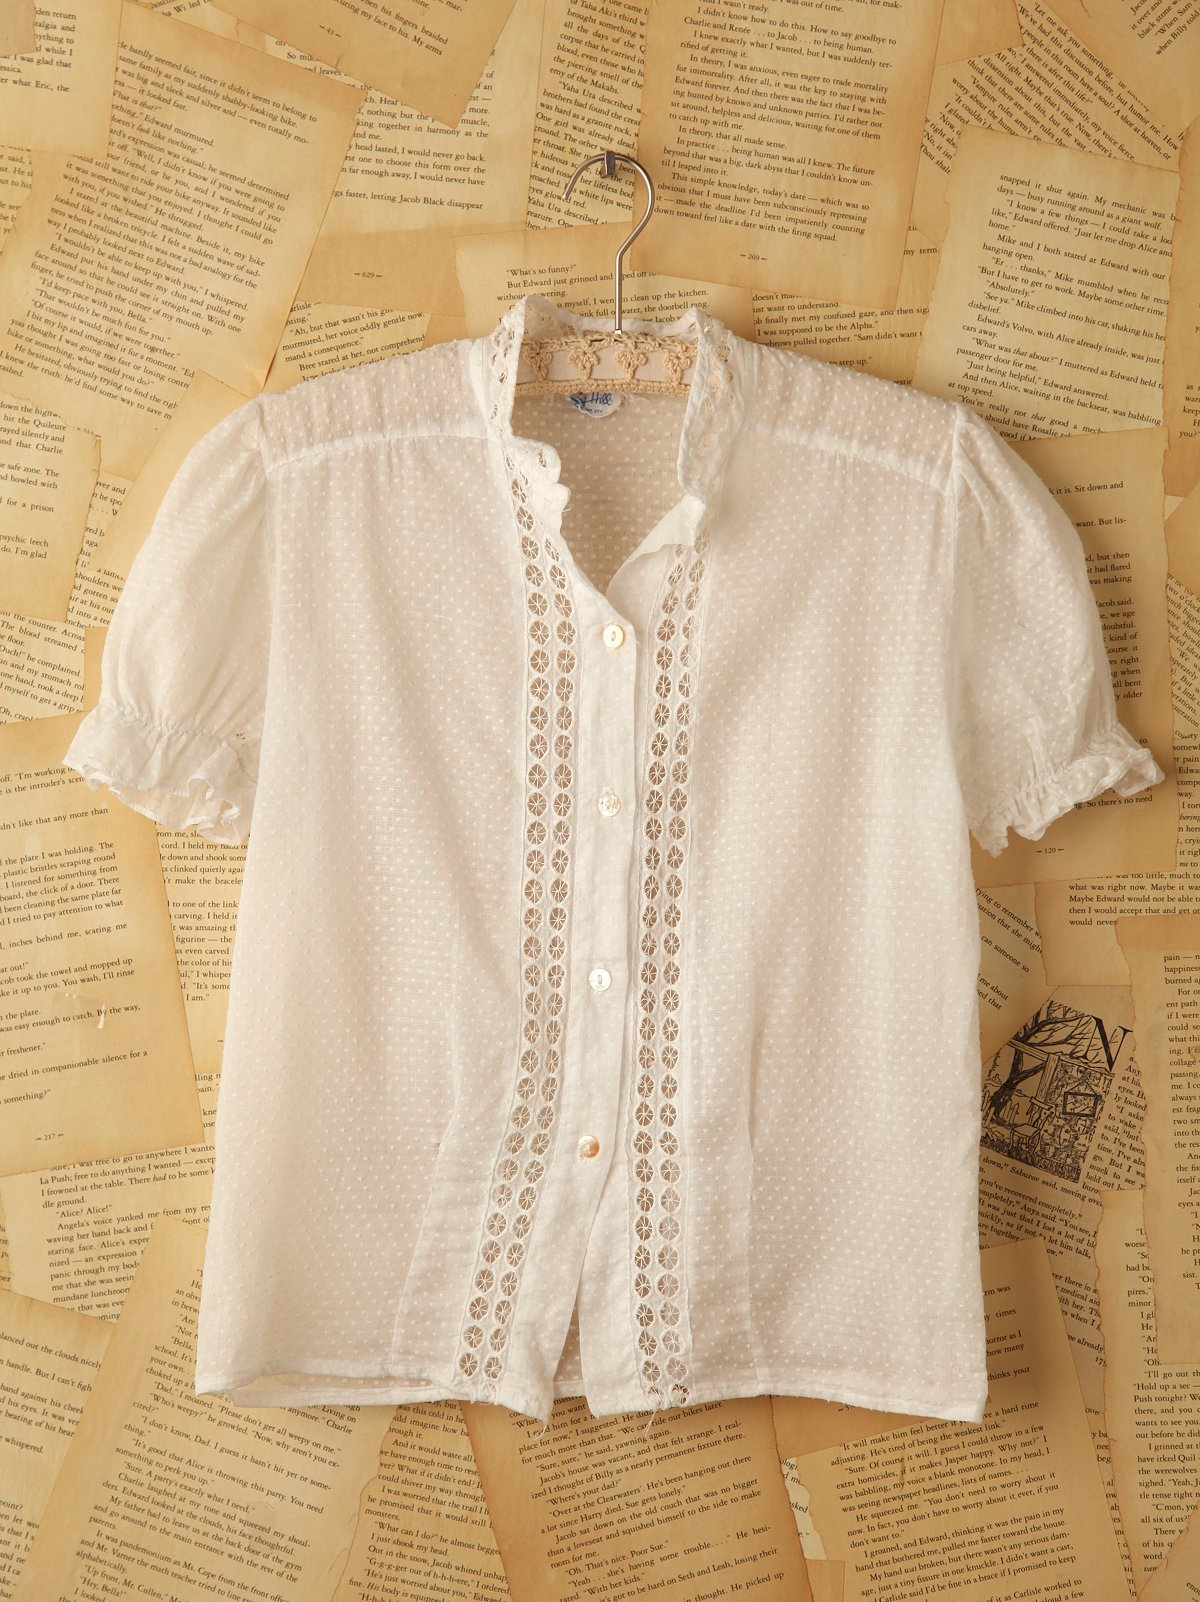 Vintage White Lace Top with Polka Dots